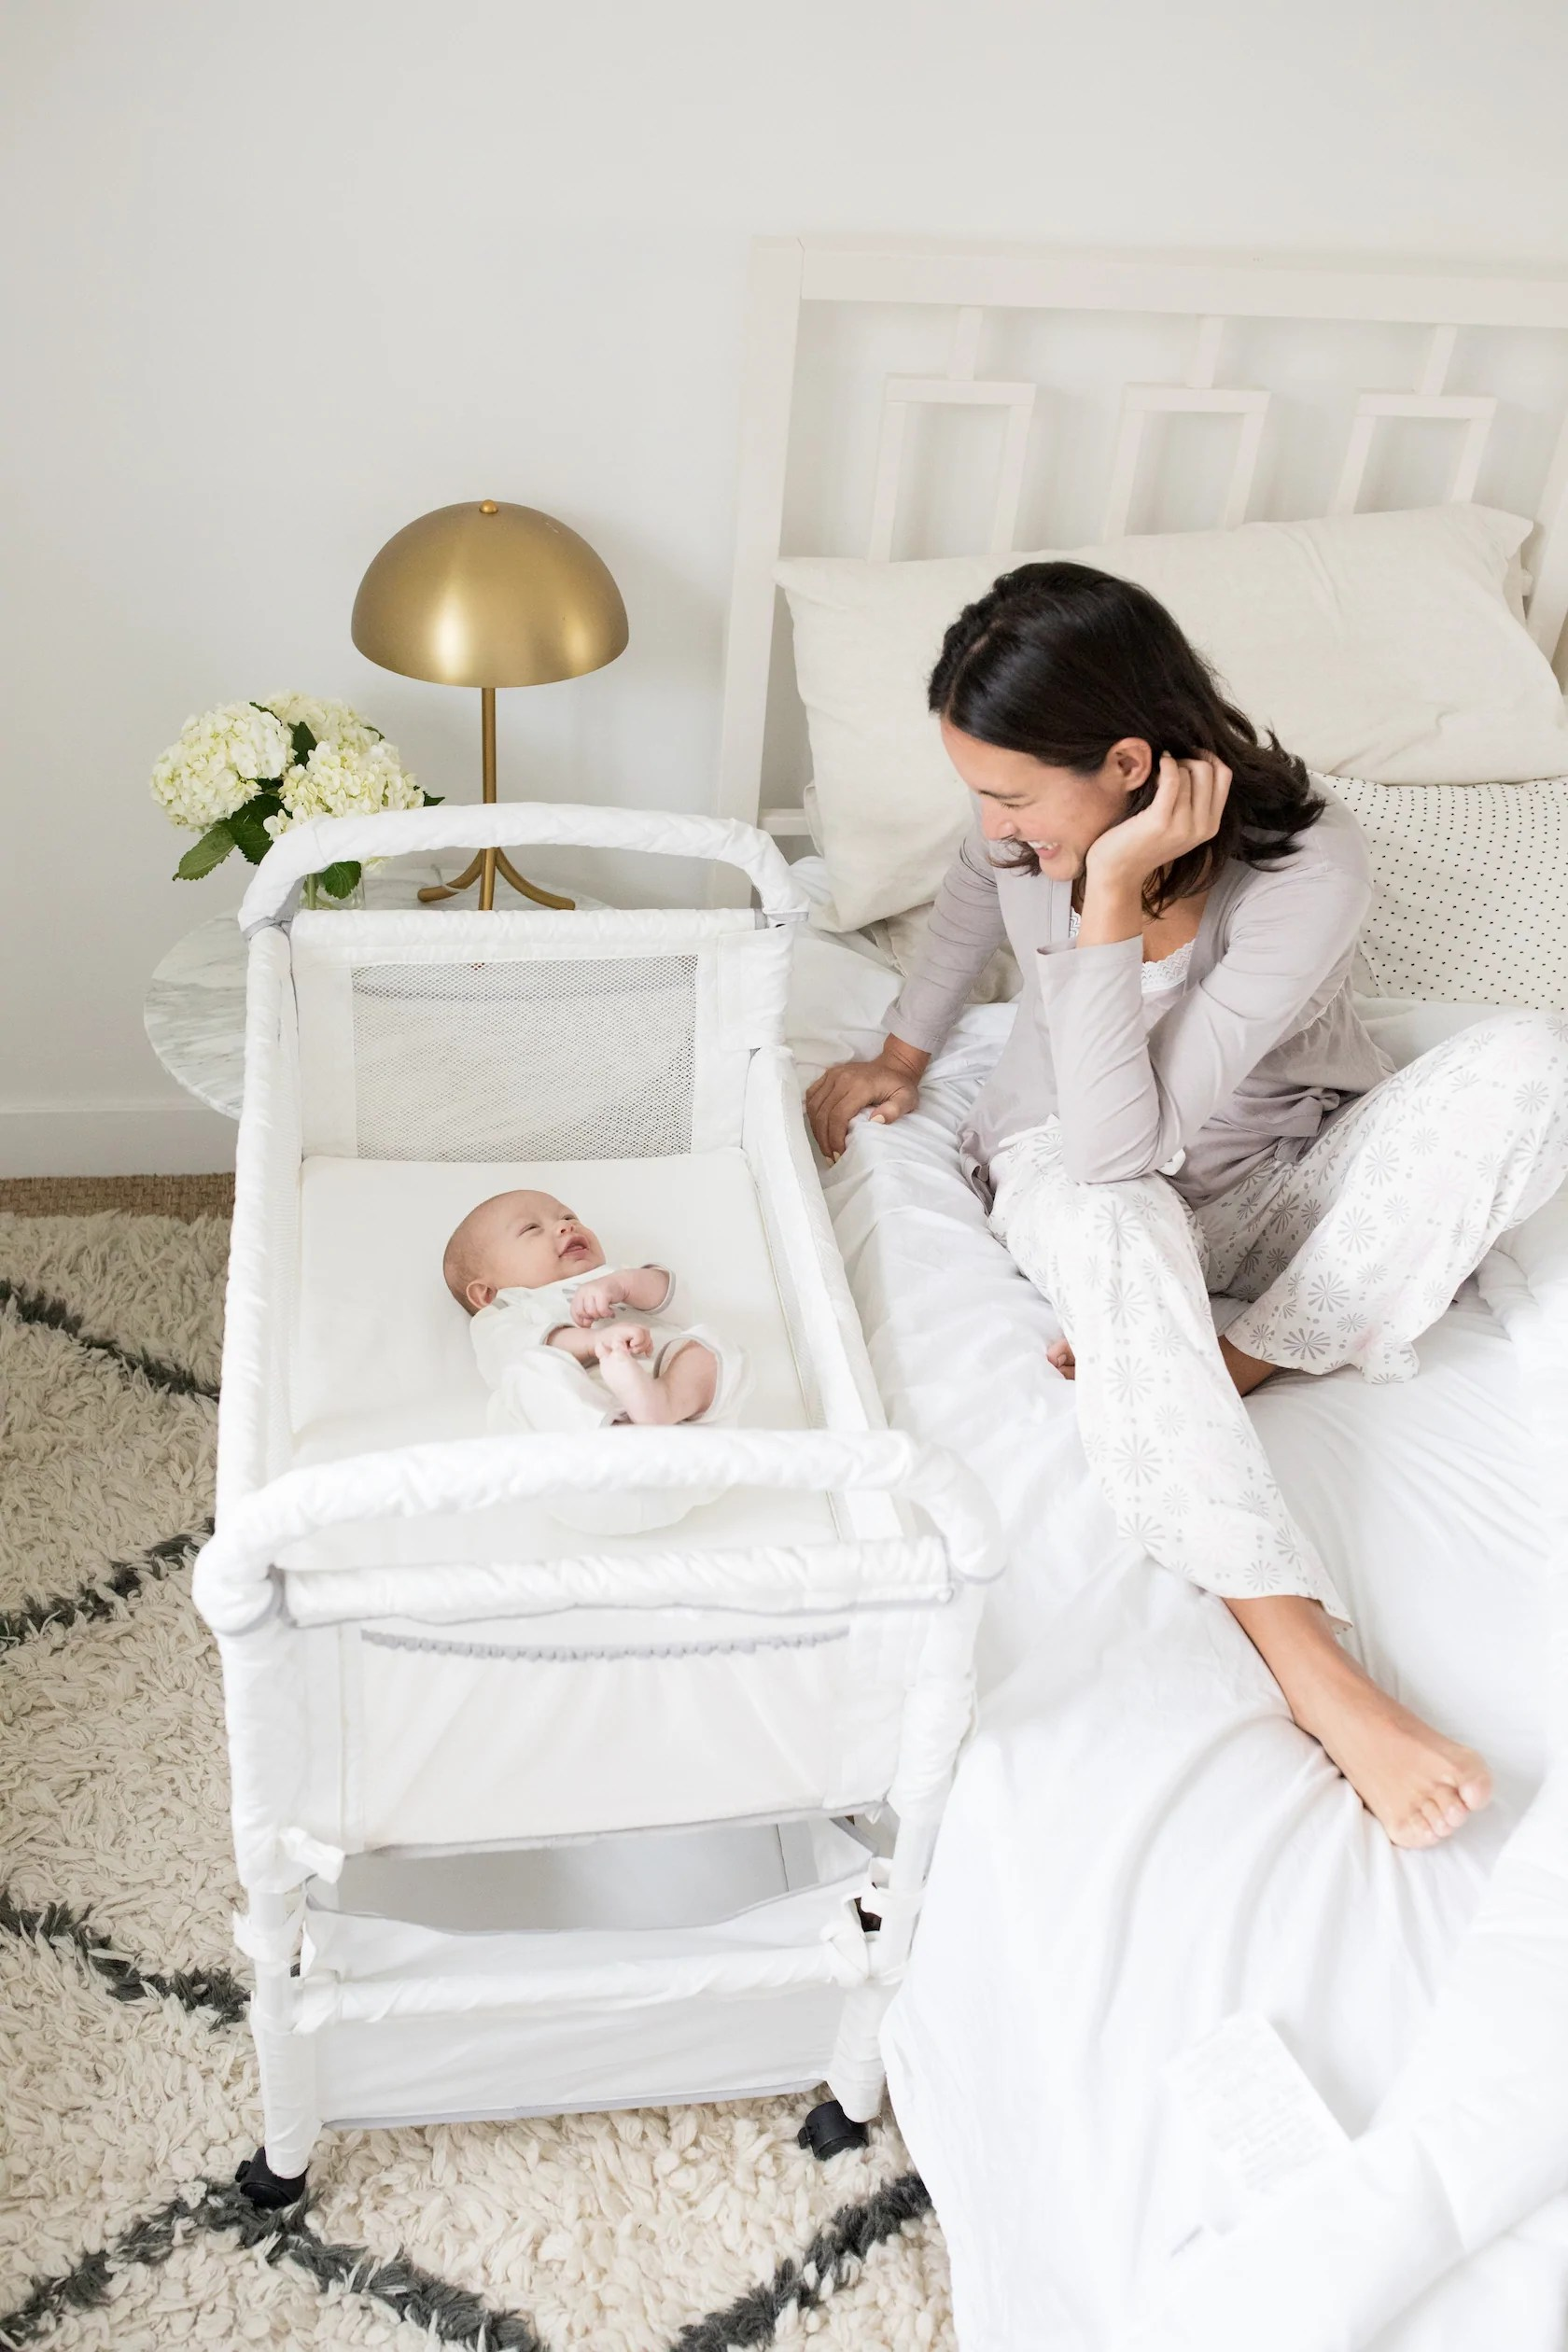 Bassinet Attached To Bed : bassinet, attached, CLEAR-VUE, CO-SLEEPER, Arm's, Reach, Concepts